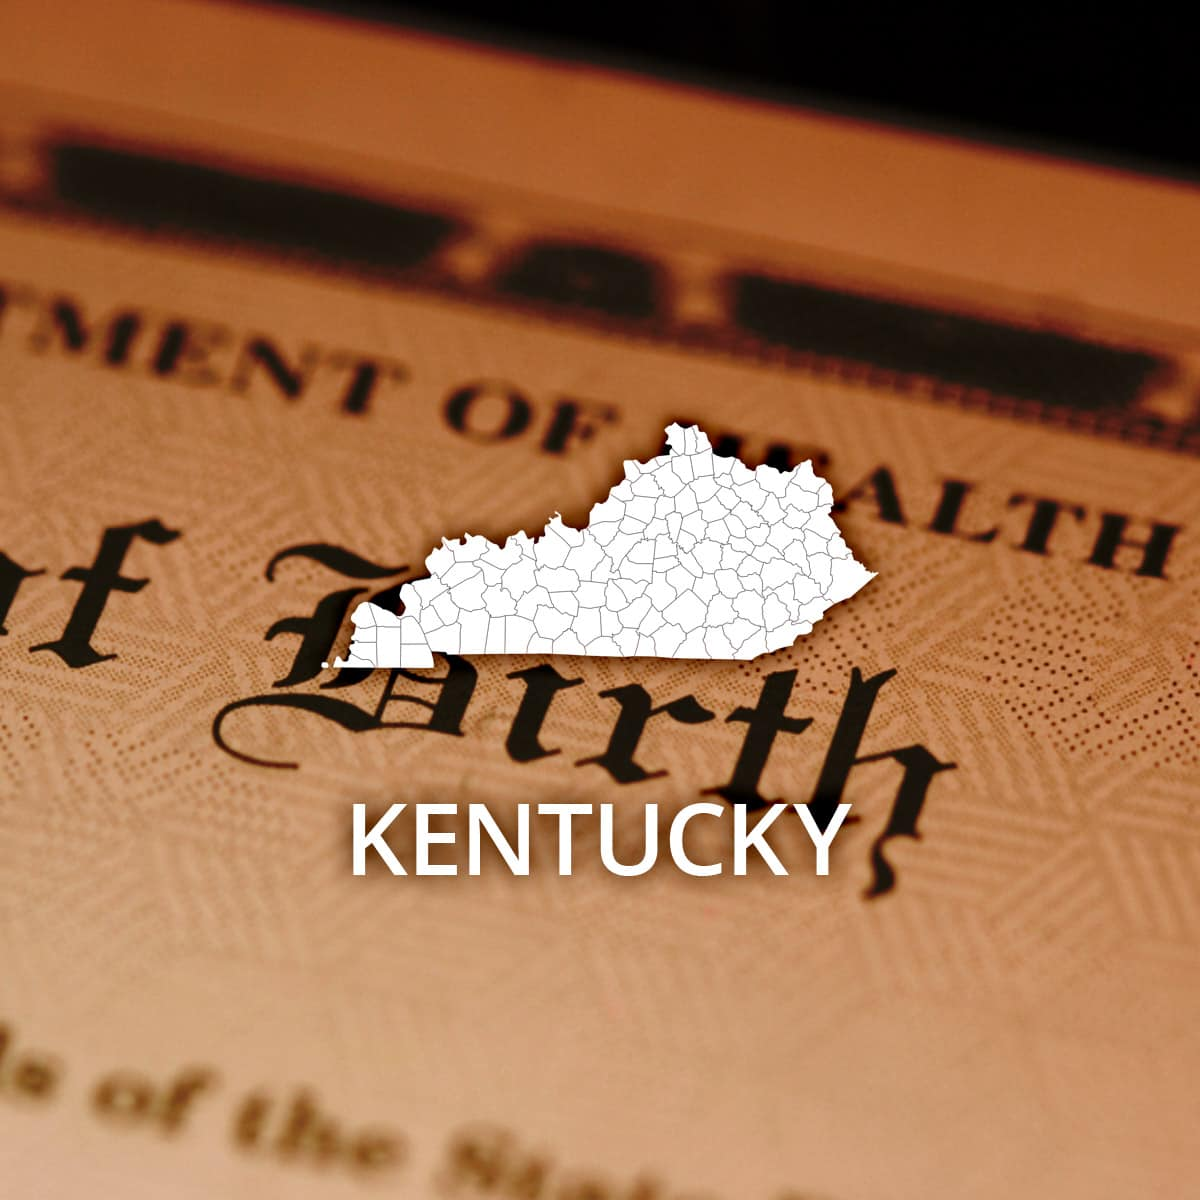 Where to Obtain a Kentucky Birth Certificate